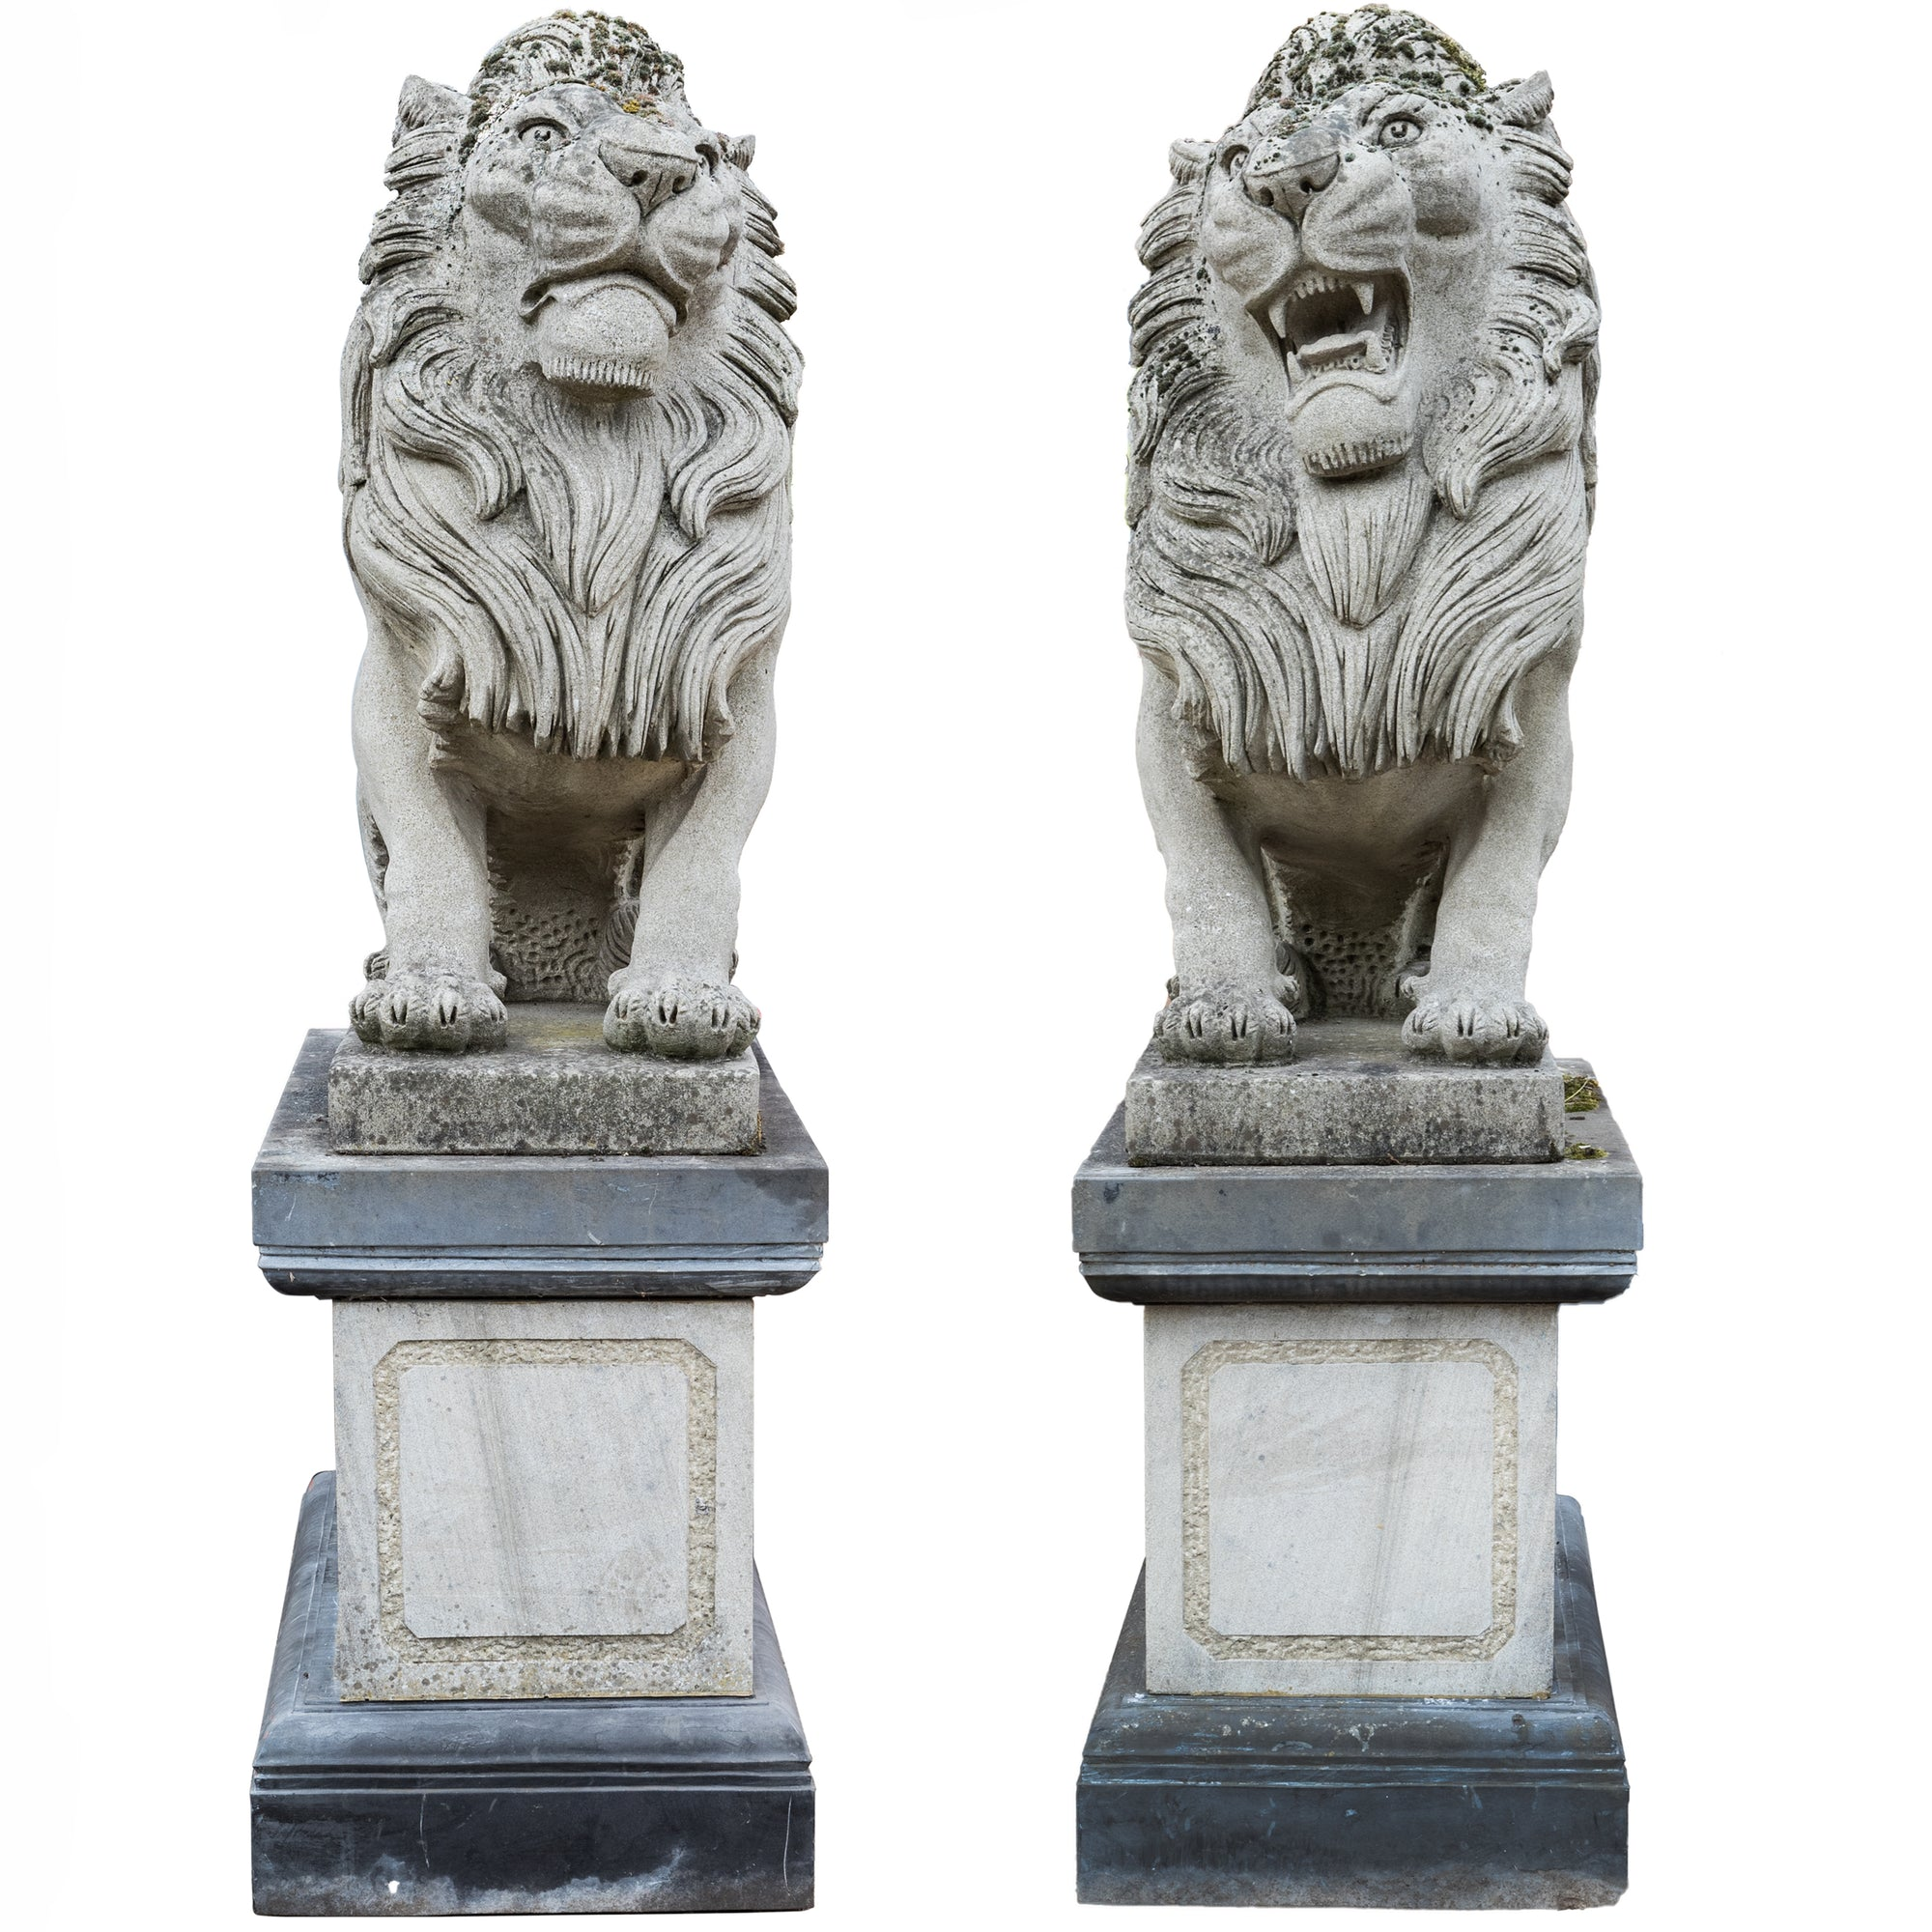 Pair of Monumental Stone Lions on their own Plinth